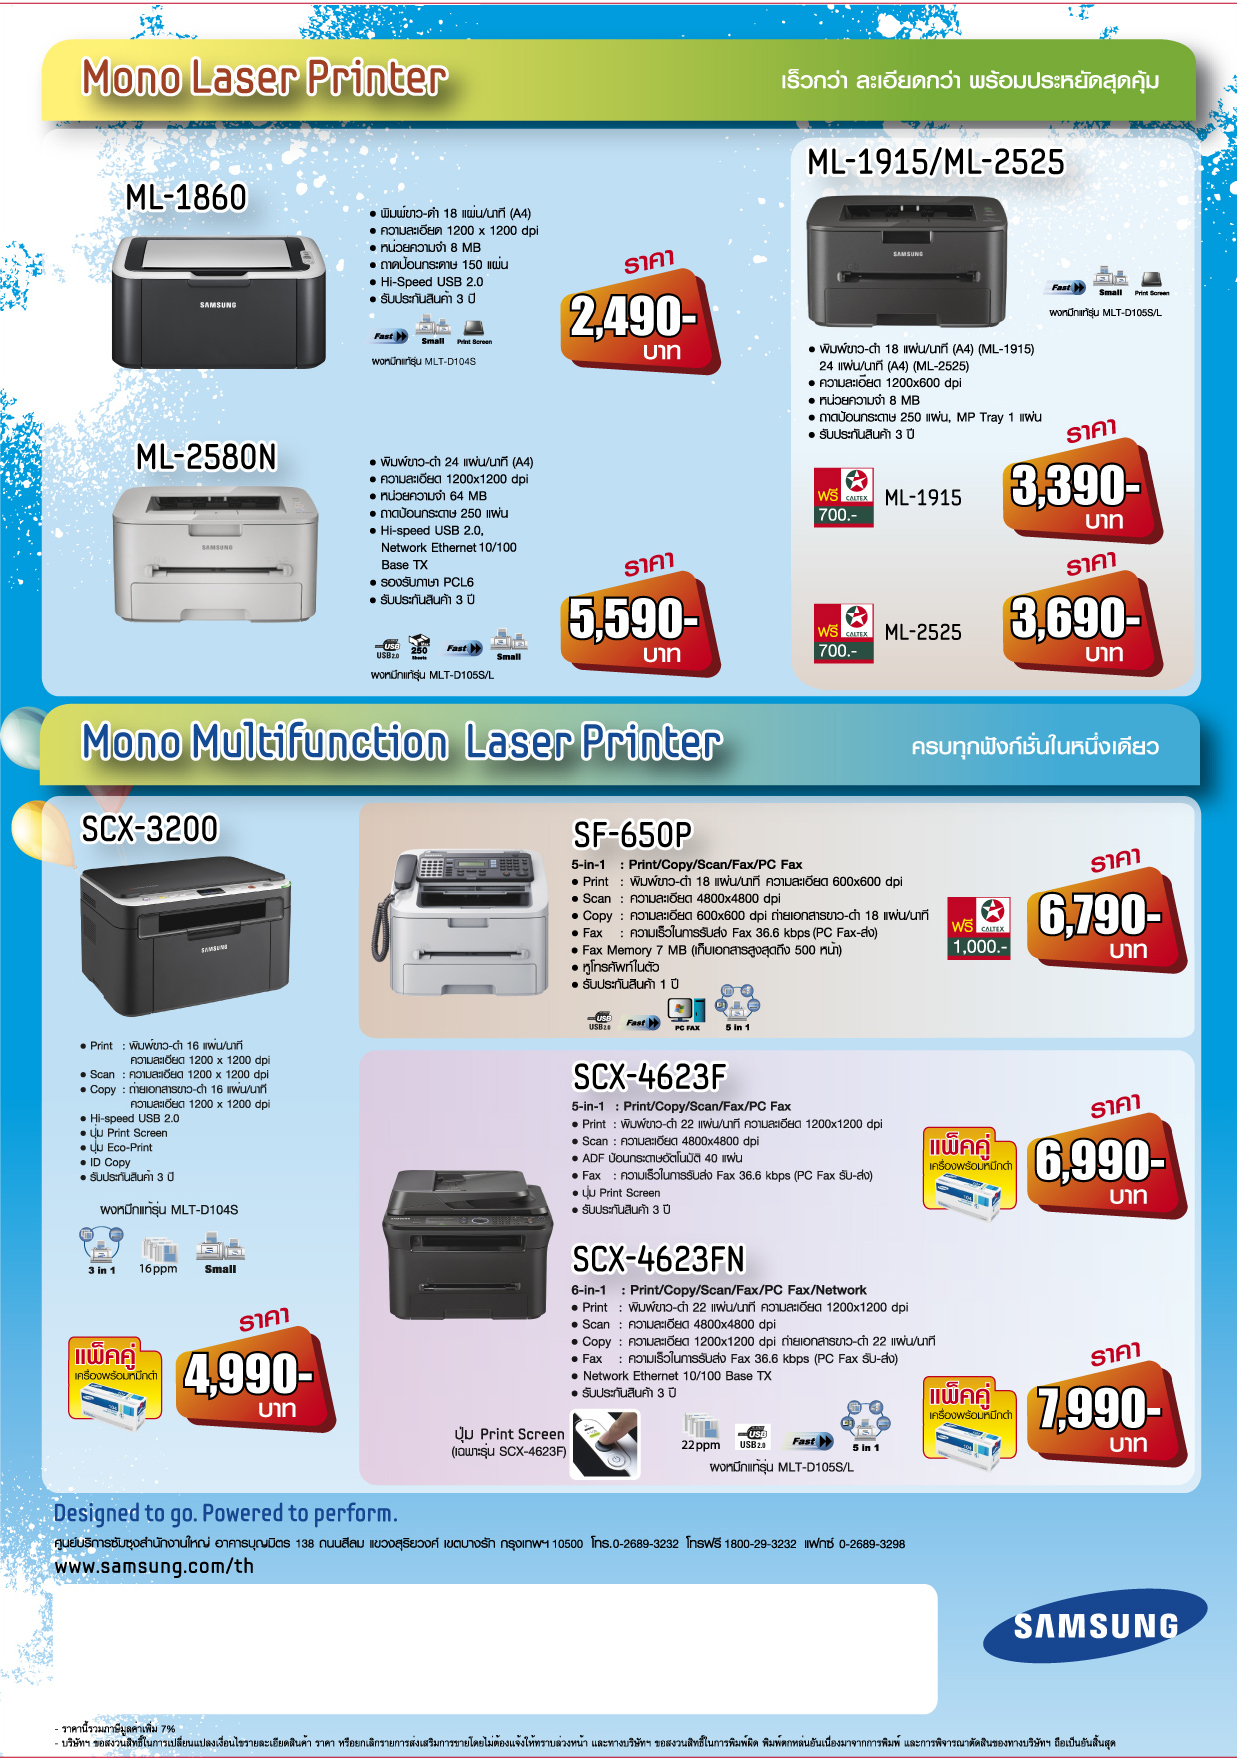 samsung printer leaflet promotion mar apr 2011 vmodtech. Black Bedroom Furniture Sets. Home Design Ideas